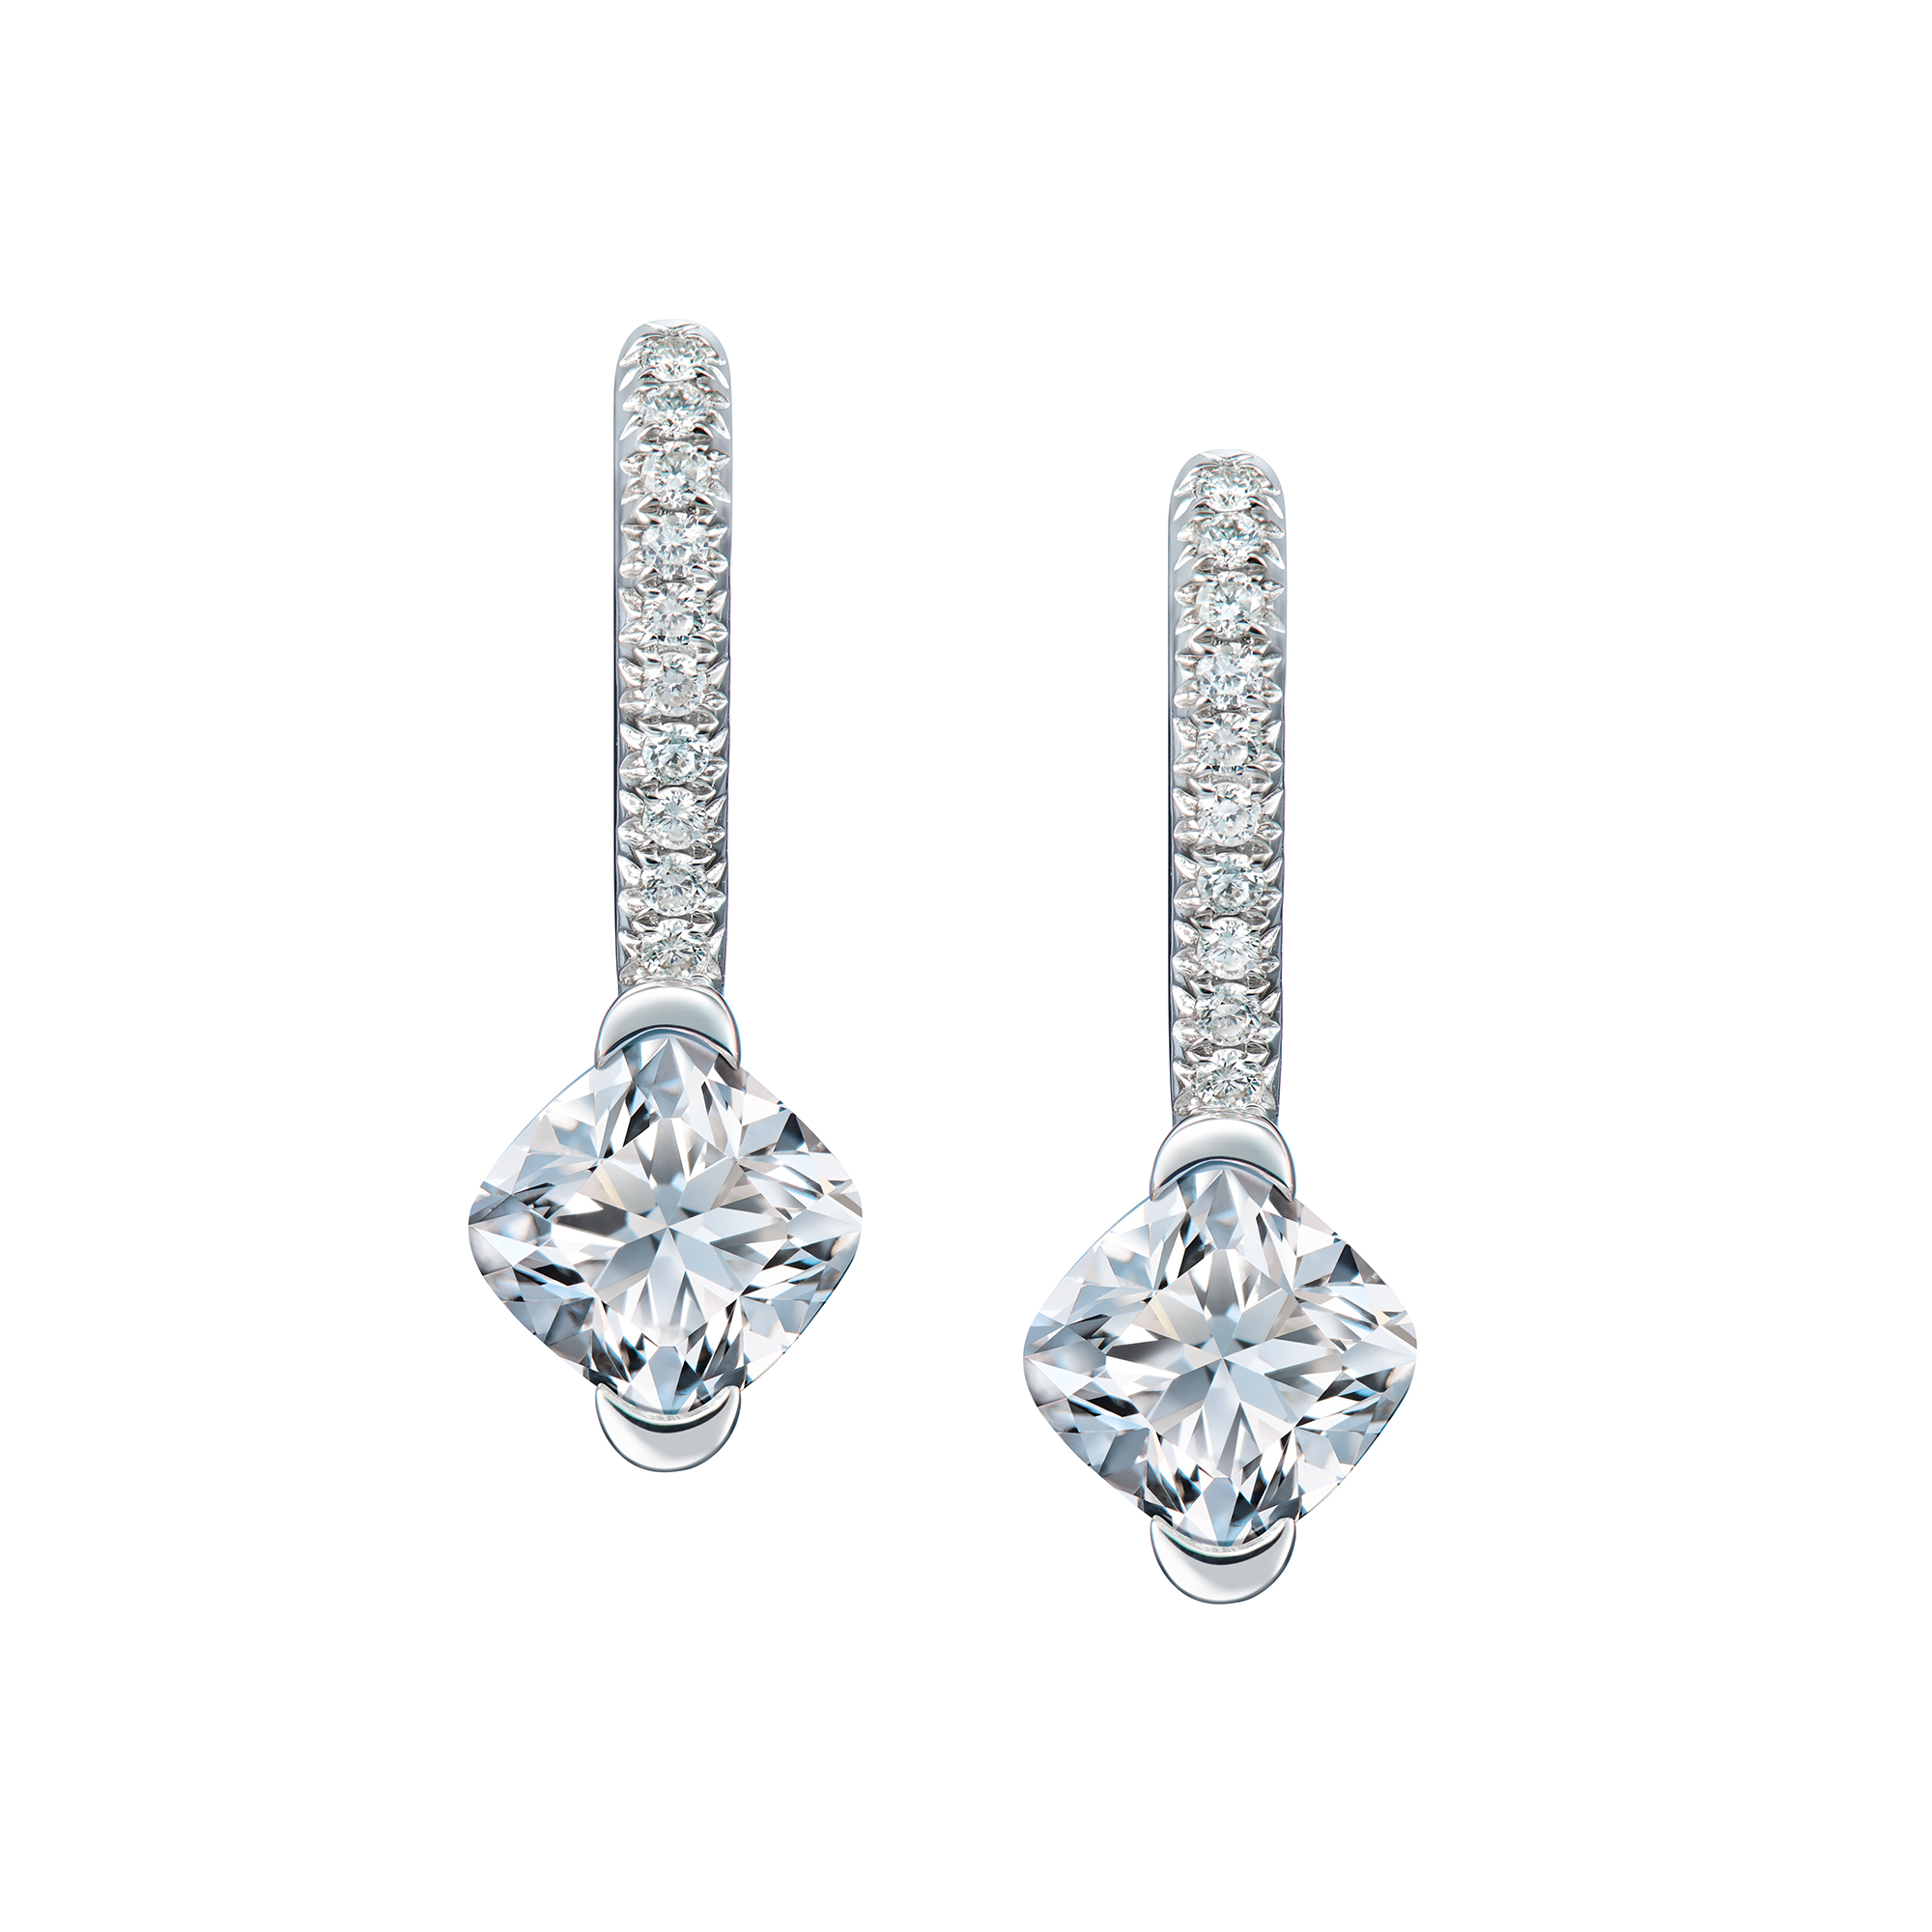 Imperiale for Forevermark Diamond Earrings